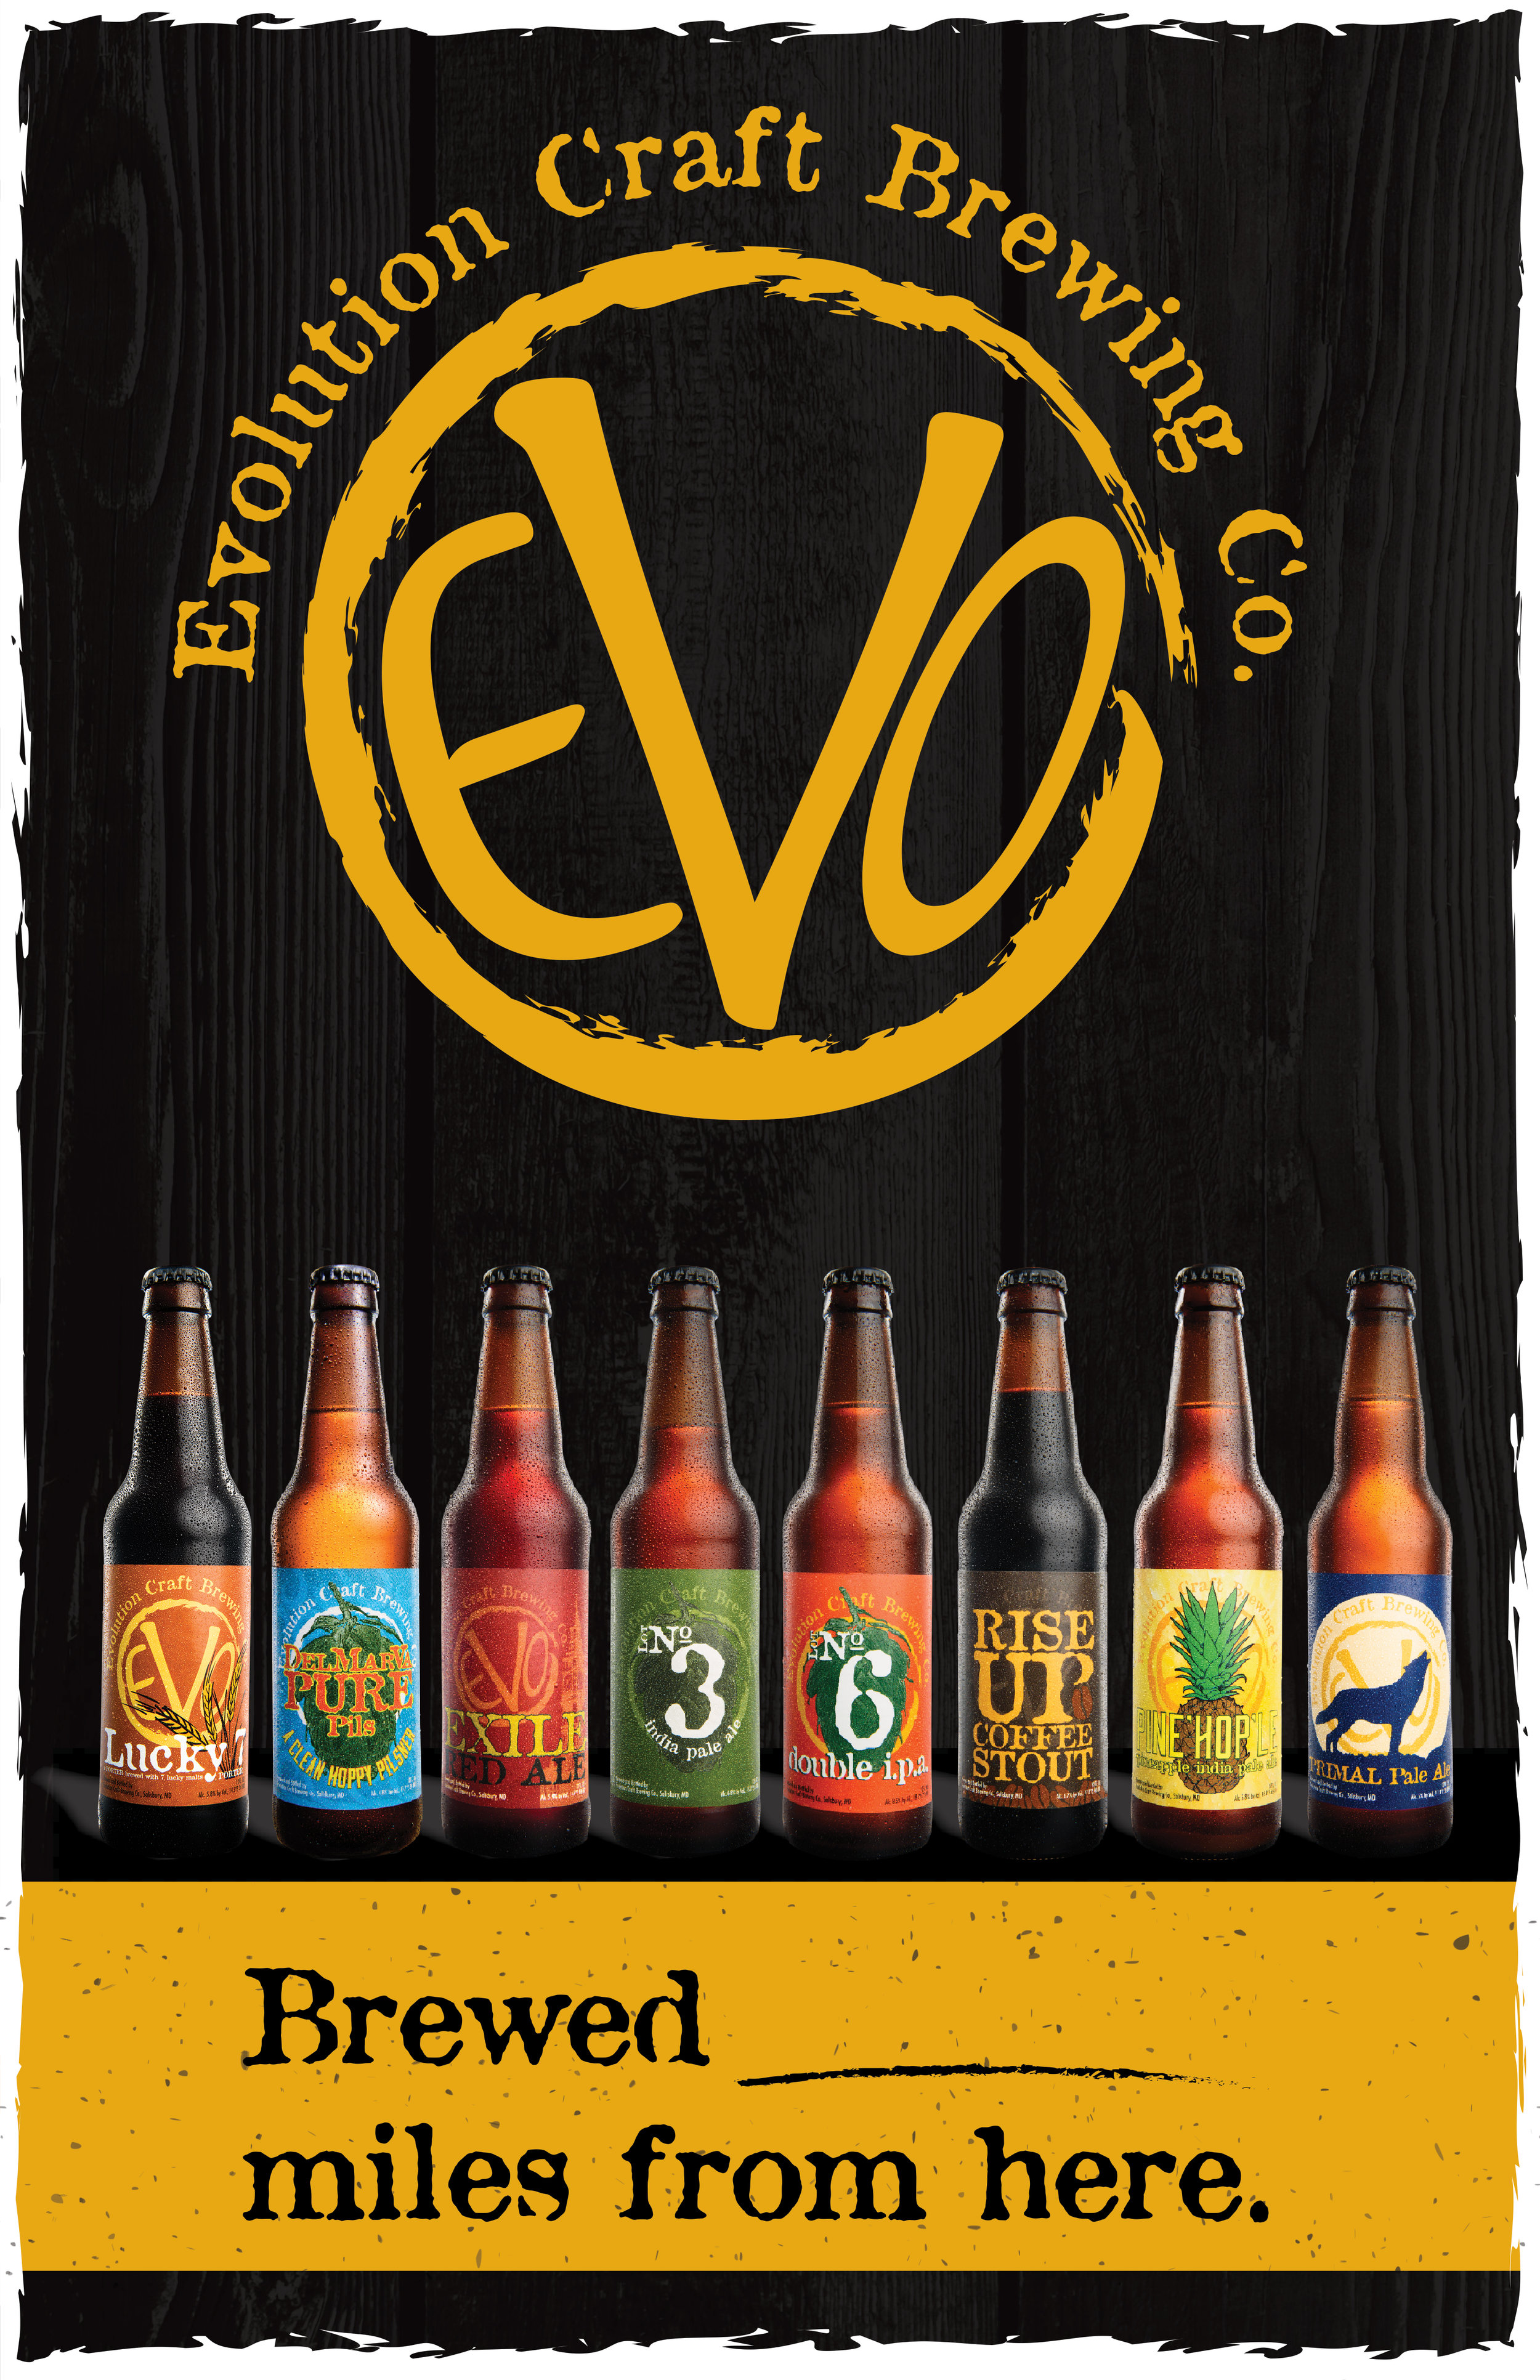 EVO-Brewed-Miles-Away-Poster-7.jpg